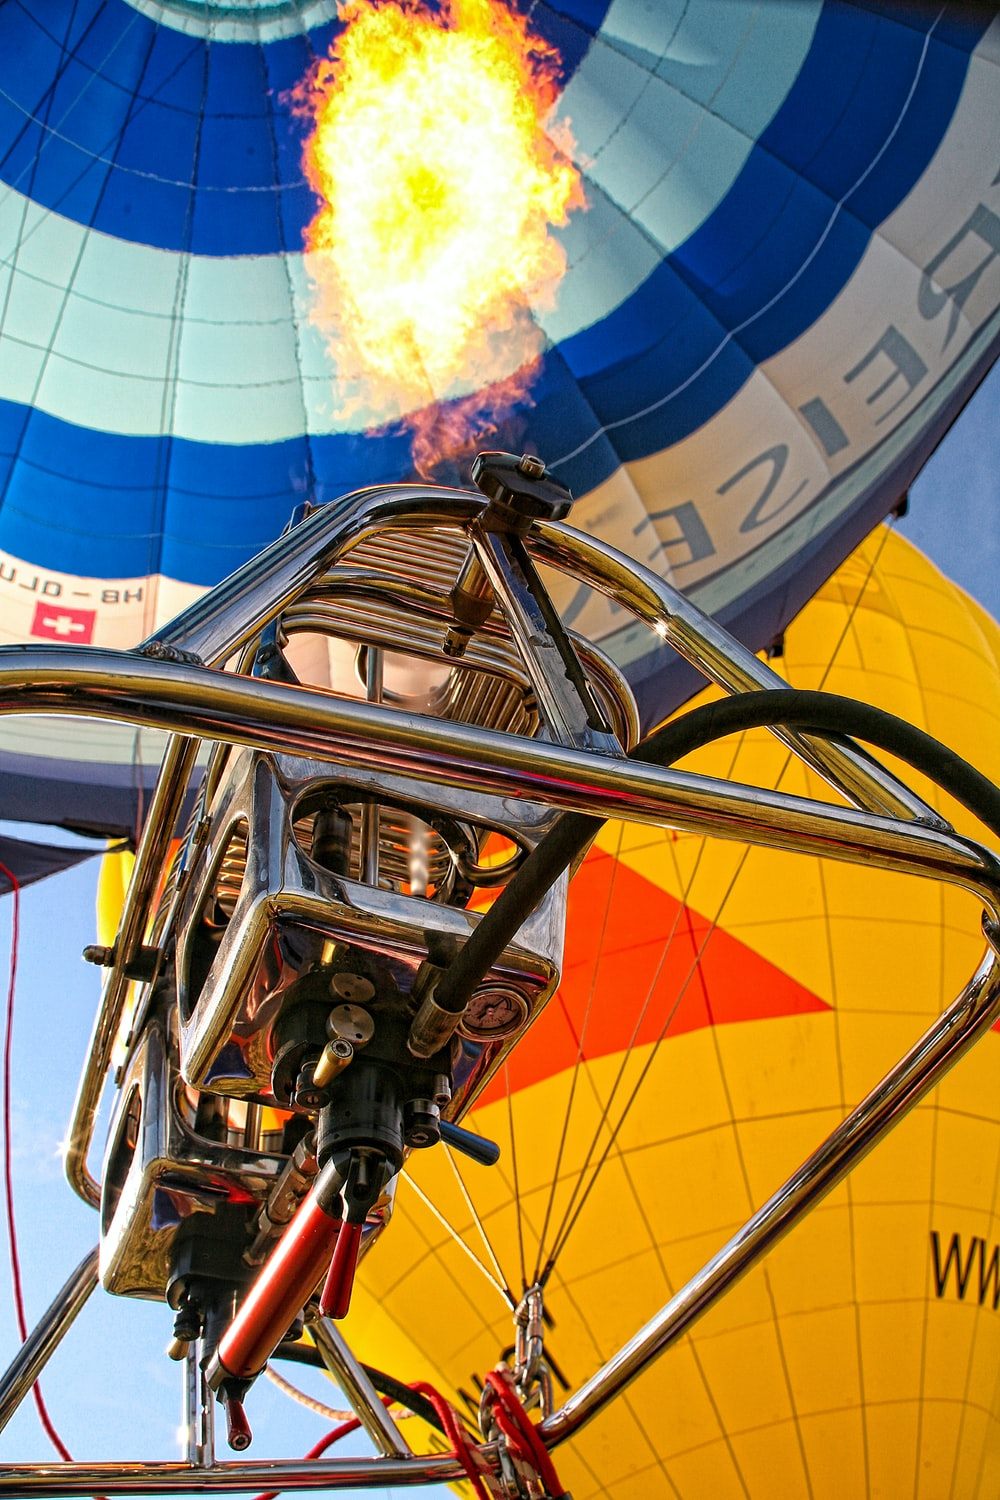 stainless steel hot air balloon engine